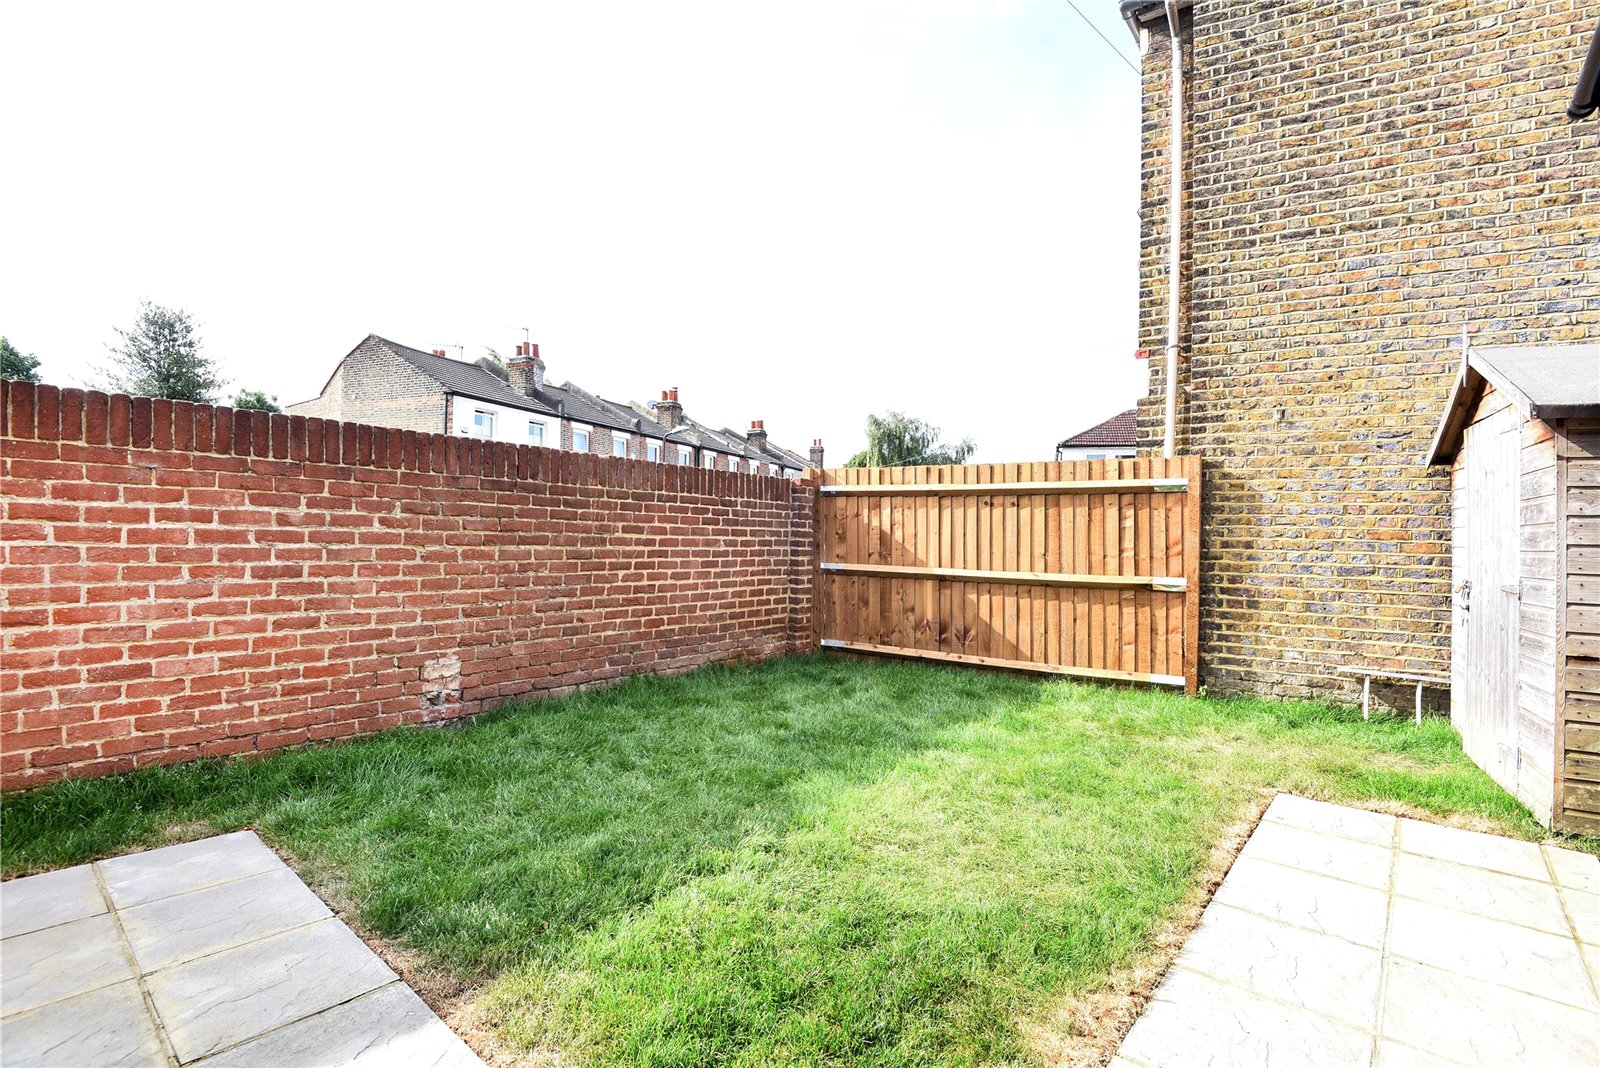 3 bed house for sale in Streatham 6